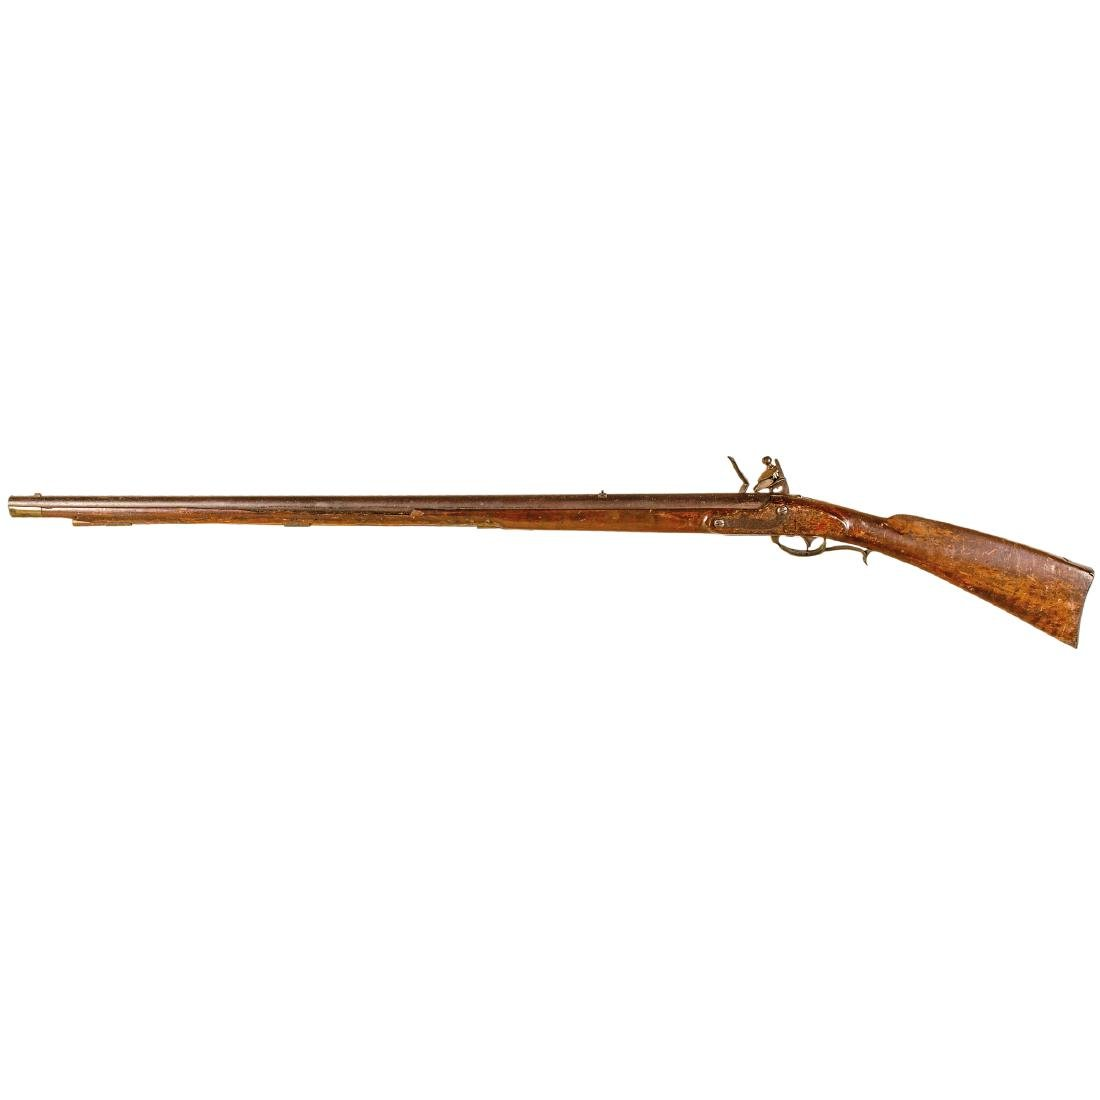 US Model 1817 Flintlock Rifle, Nathan Starr + Son